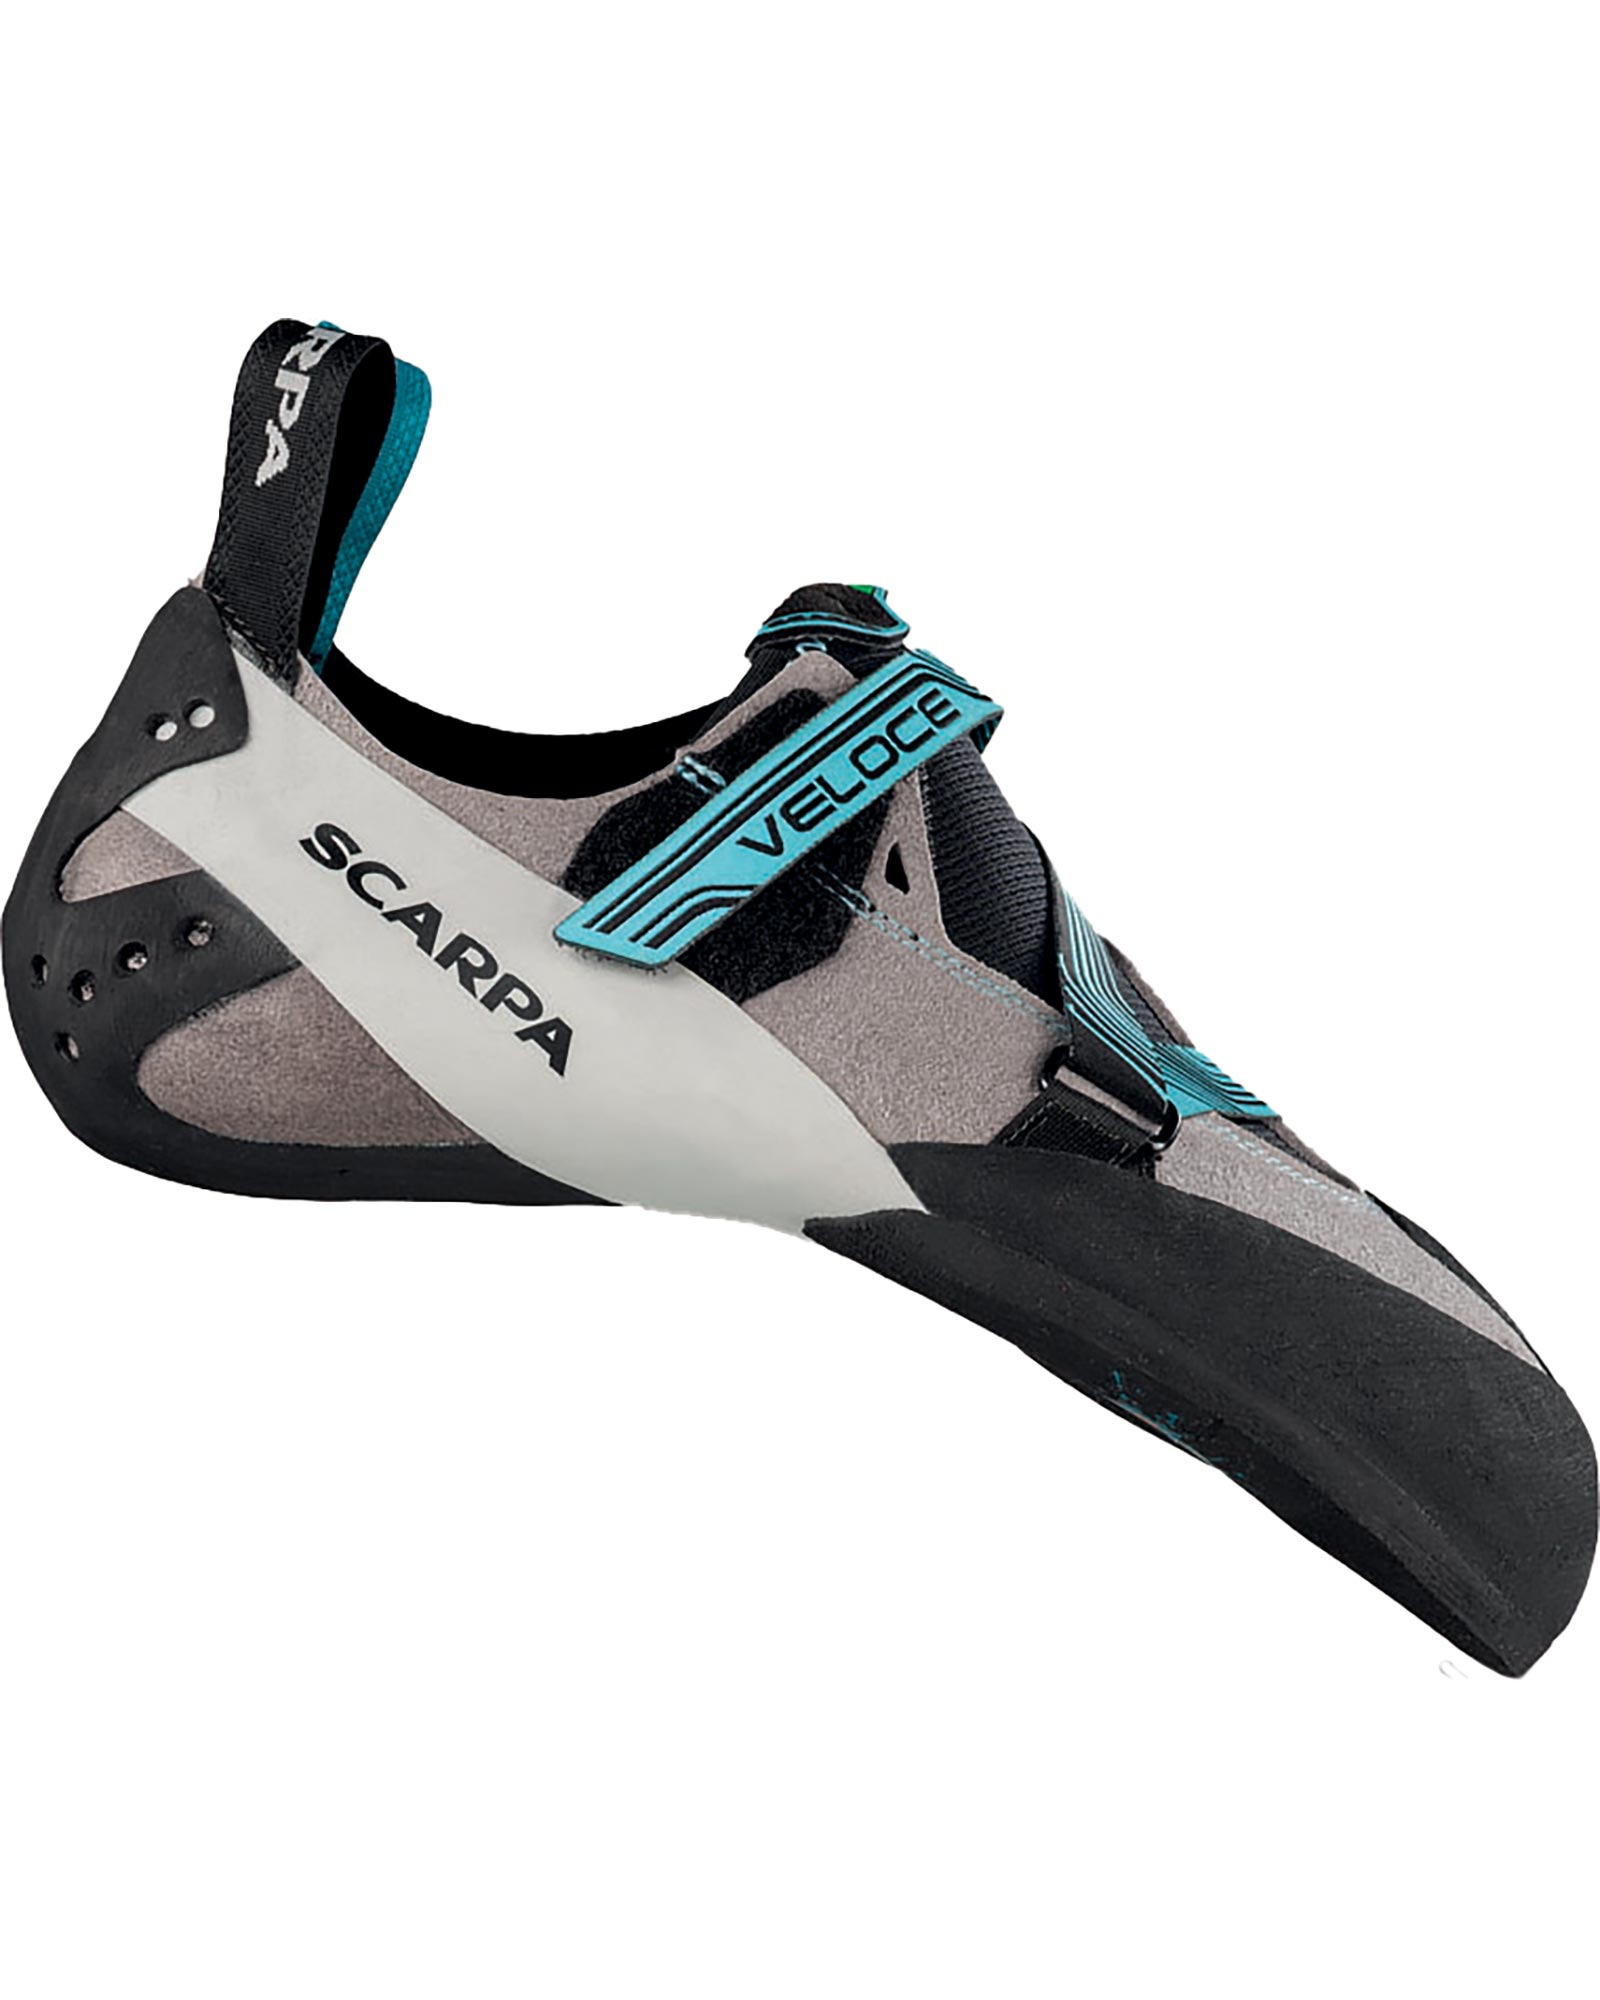 Scarpa Women's Veloce Climbing Shoes 0